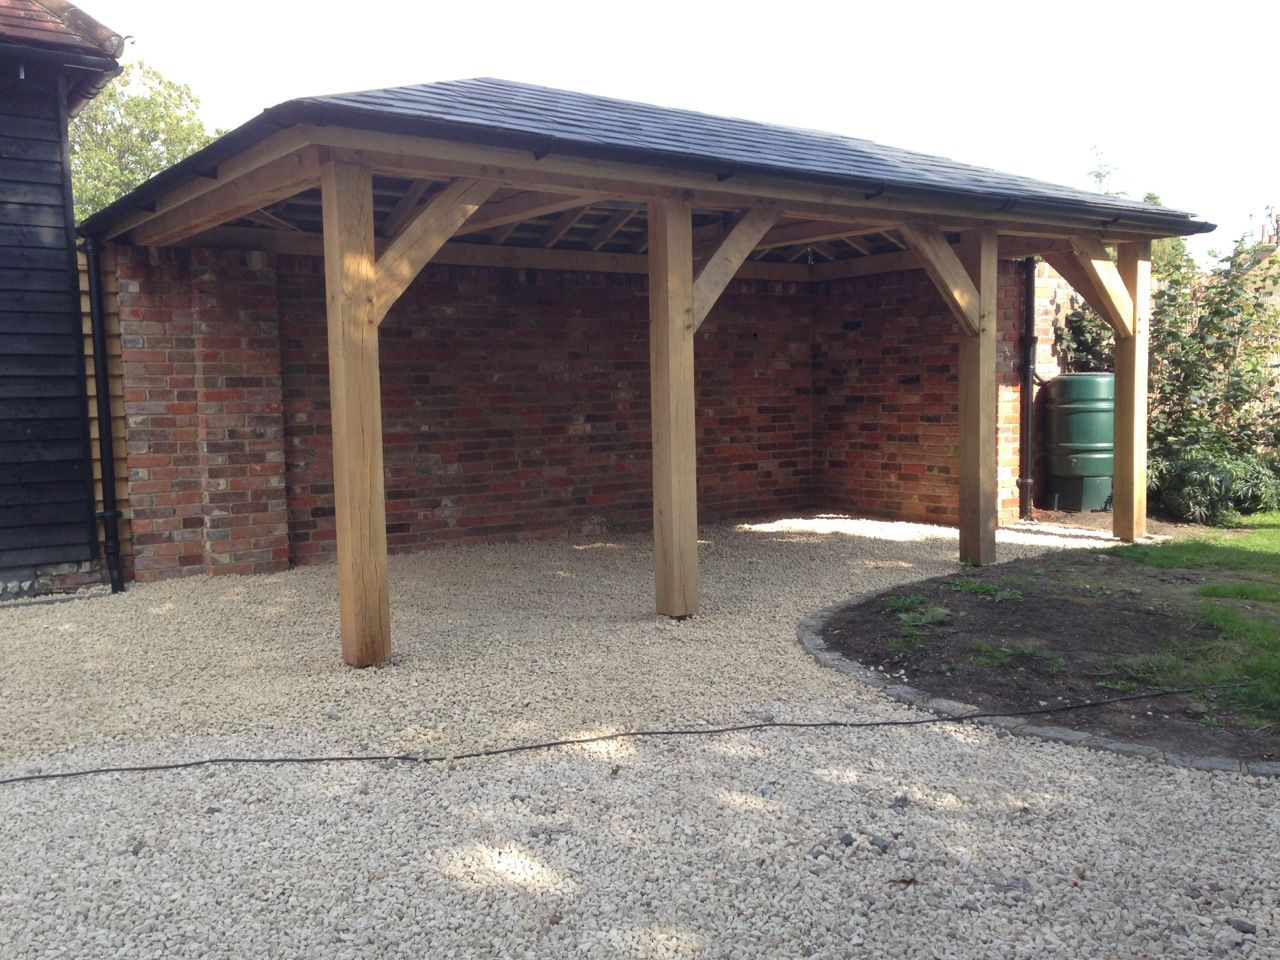 oak car port oak frame guide oakframe carport sheds pinterest terrasses. Black Bedroom Furniture Sets. Home Design Ideas